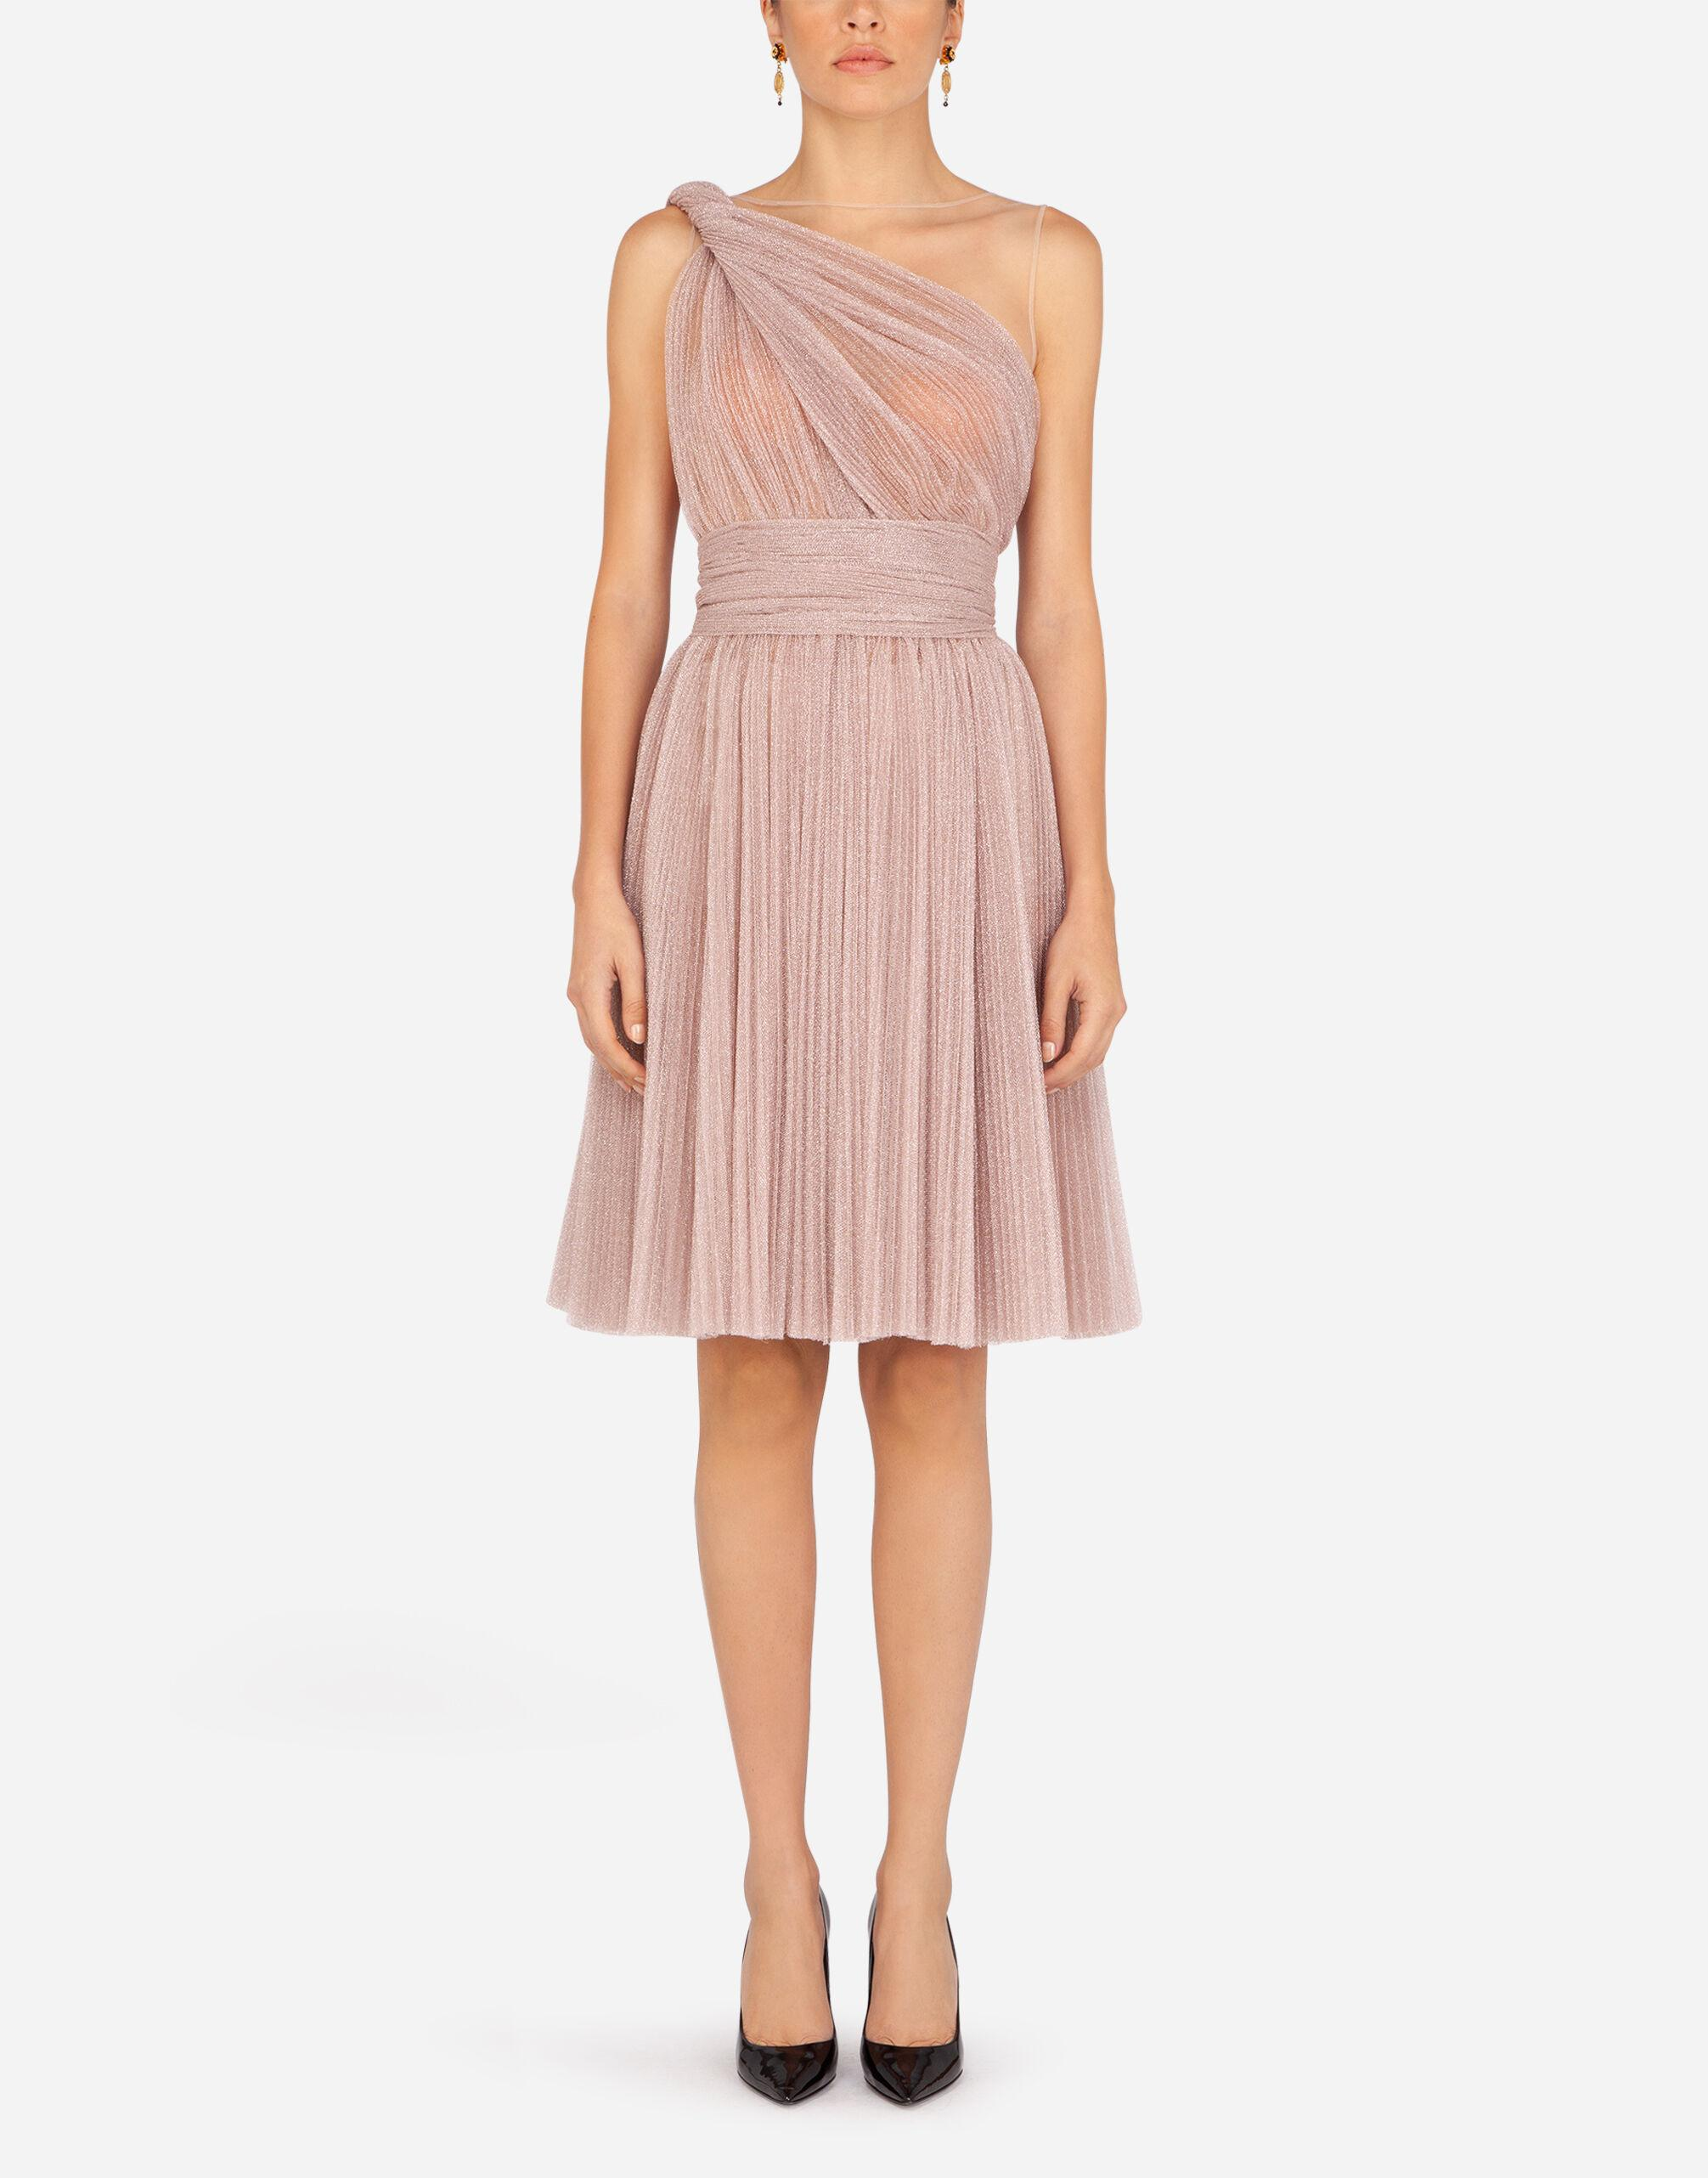 One-shoulder midi dress in pleated lamé tulle